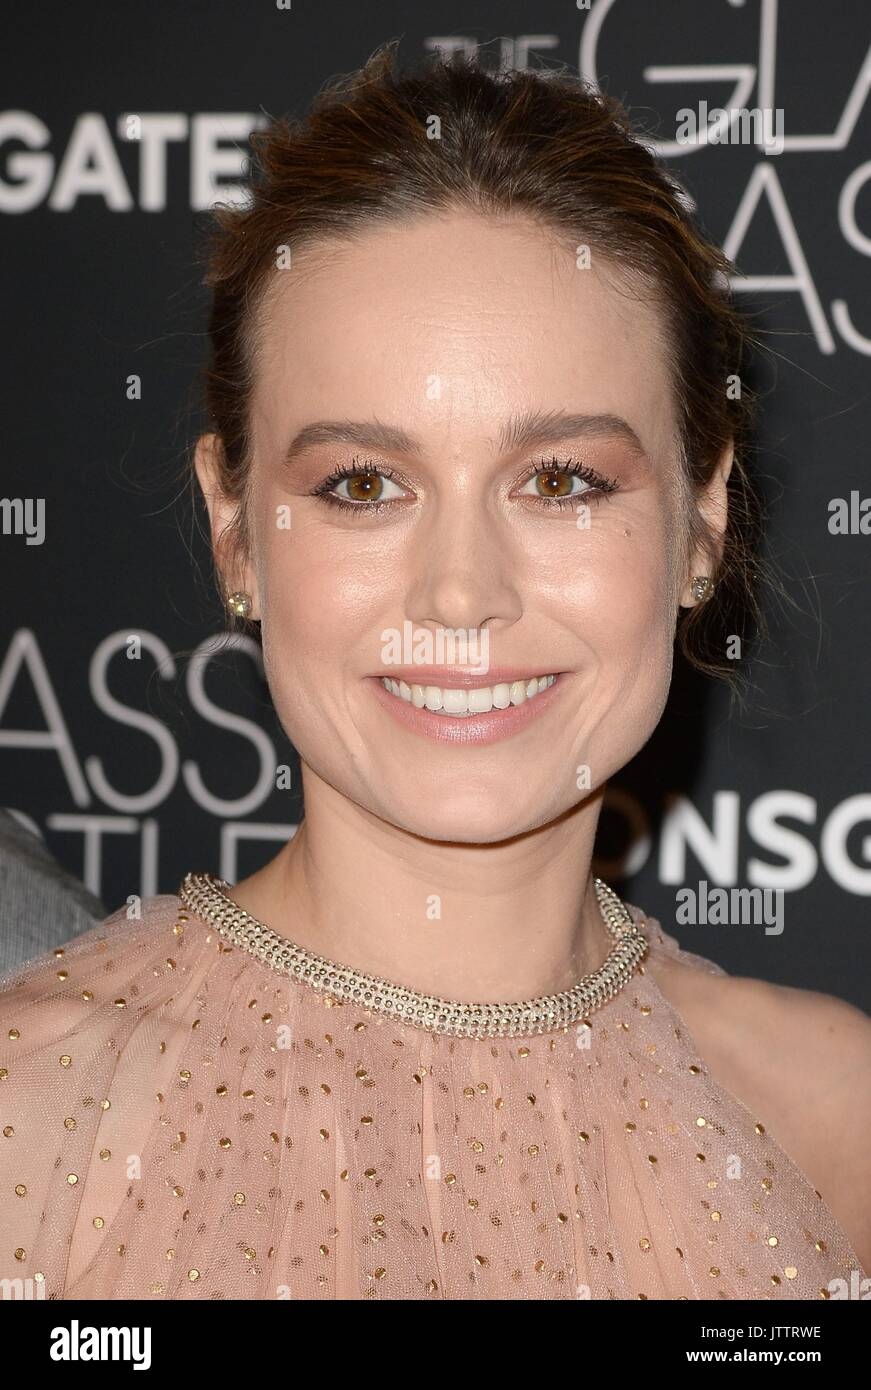 New York, NY, USA  9th Aug, 2017  Brie Larson at arrivals